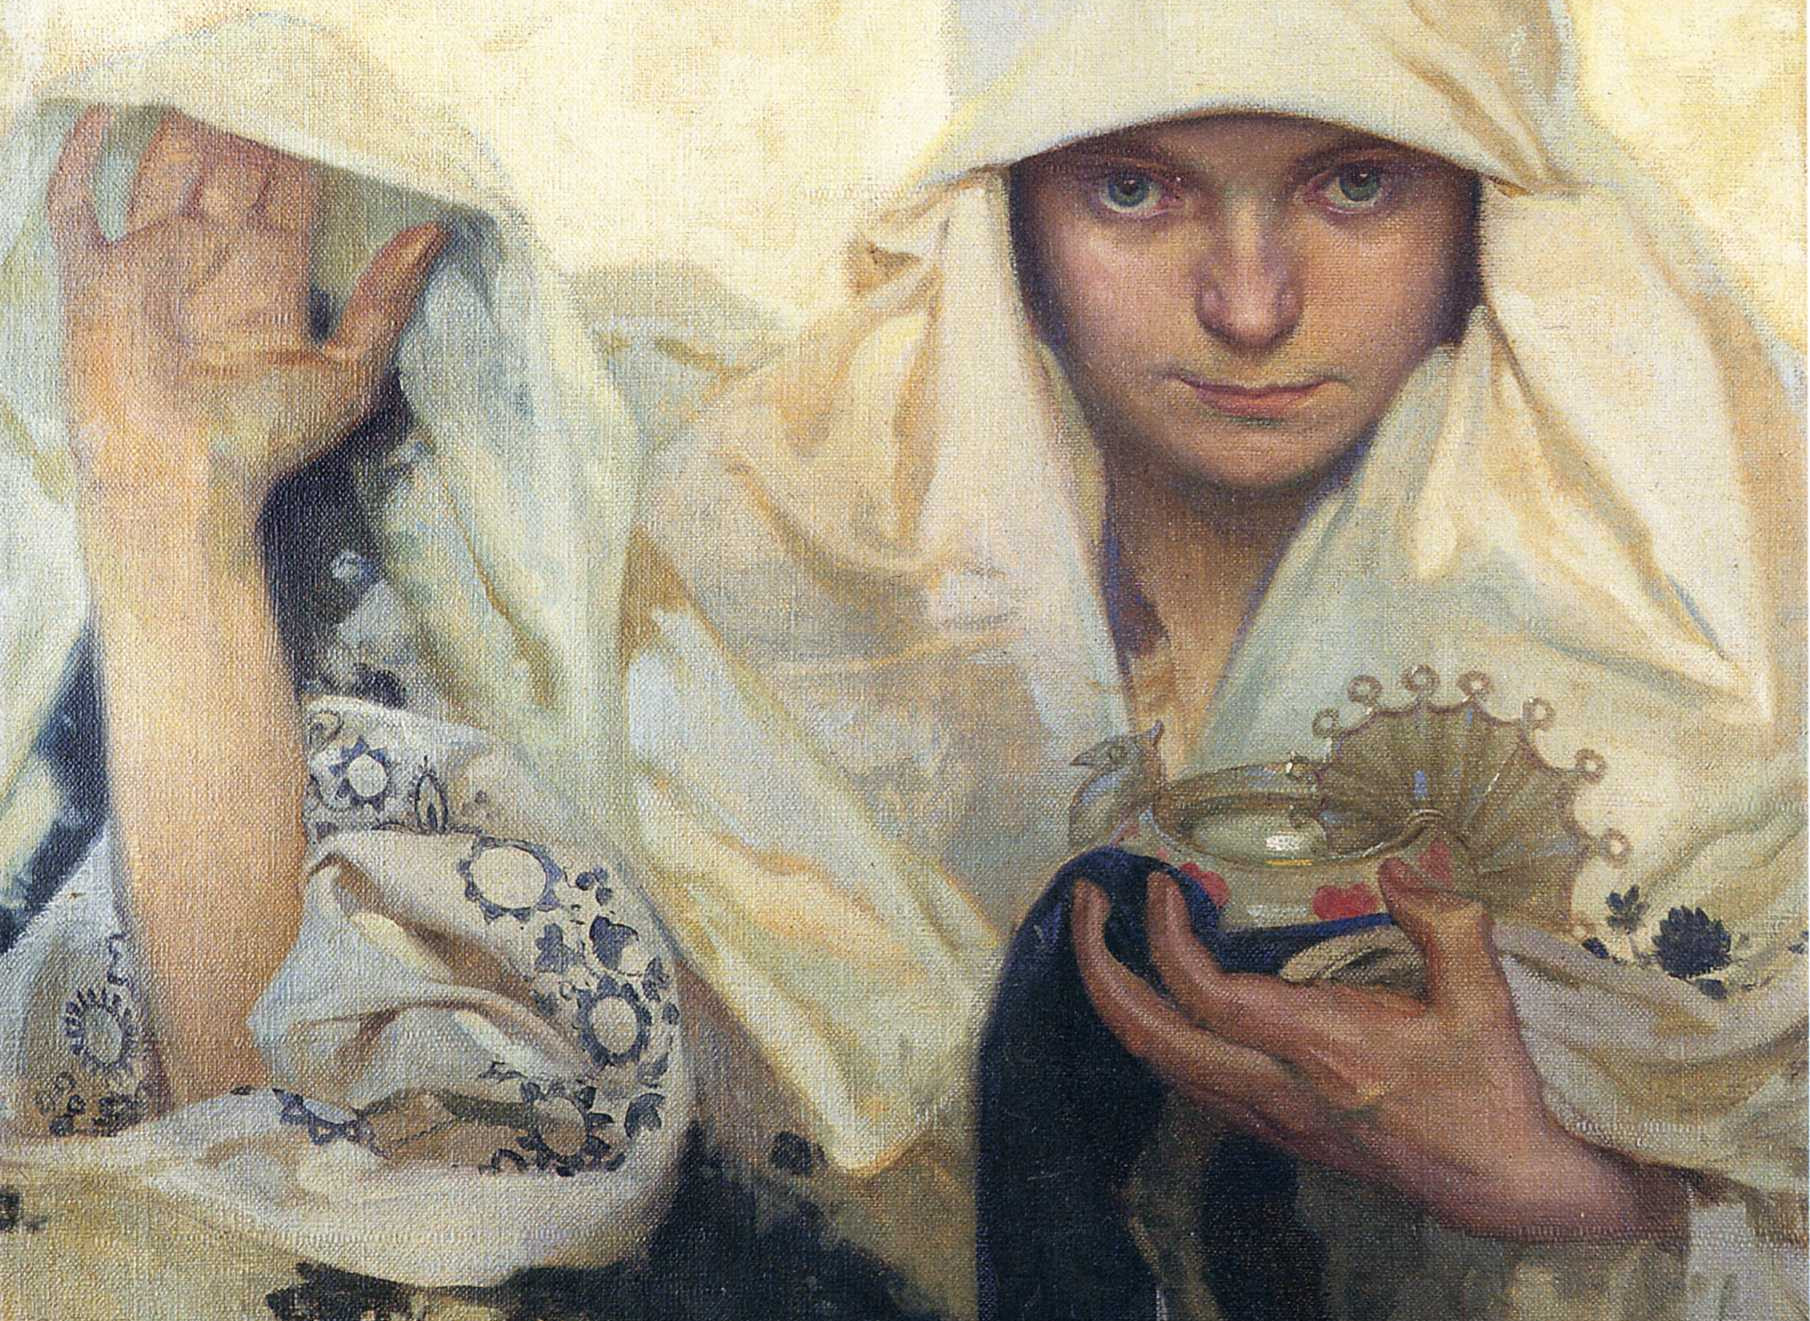 "An oil painting titled ""Fate"", painted in 1920 by Alphonse Mucha. It depicts a woman in a white robe holding an oil lamp."